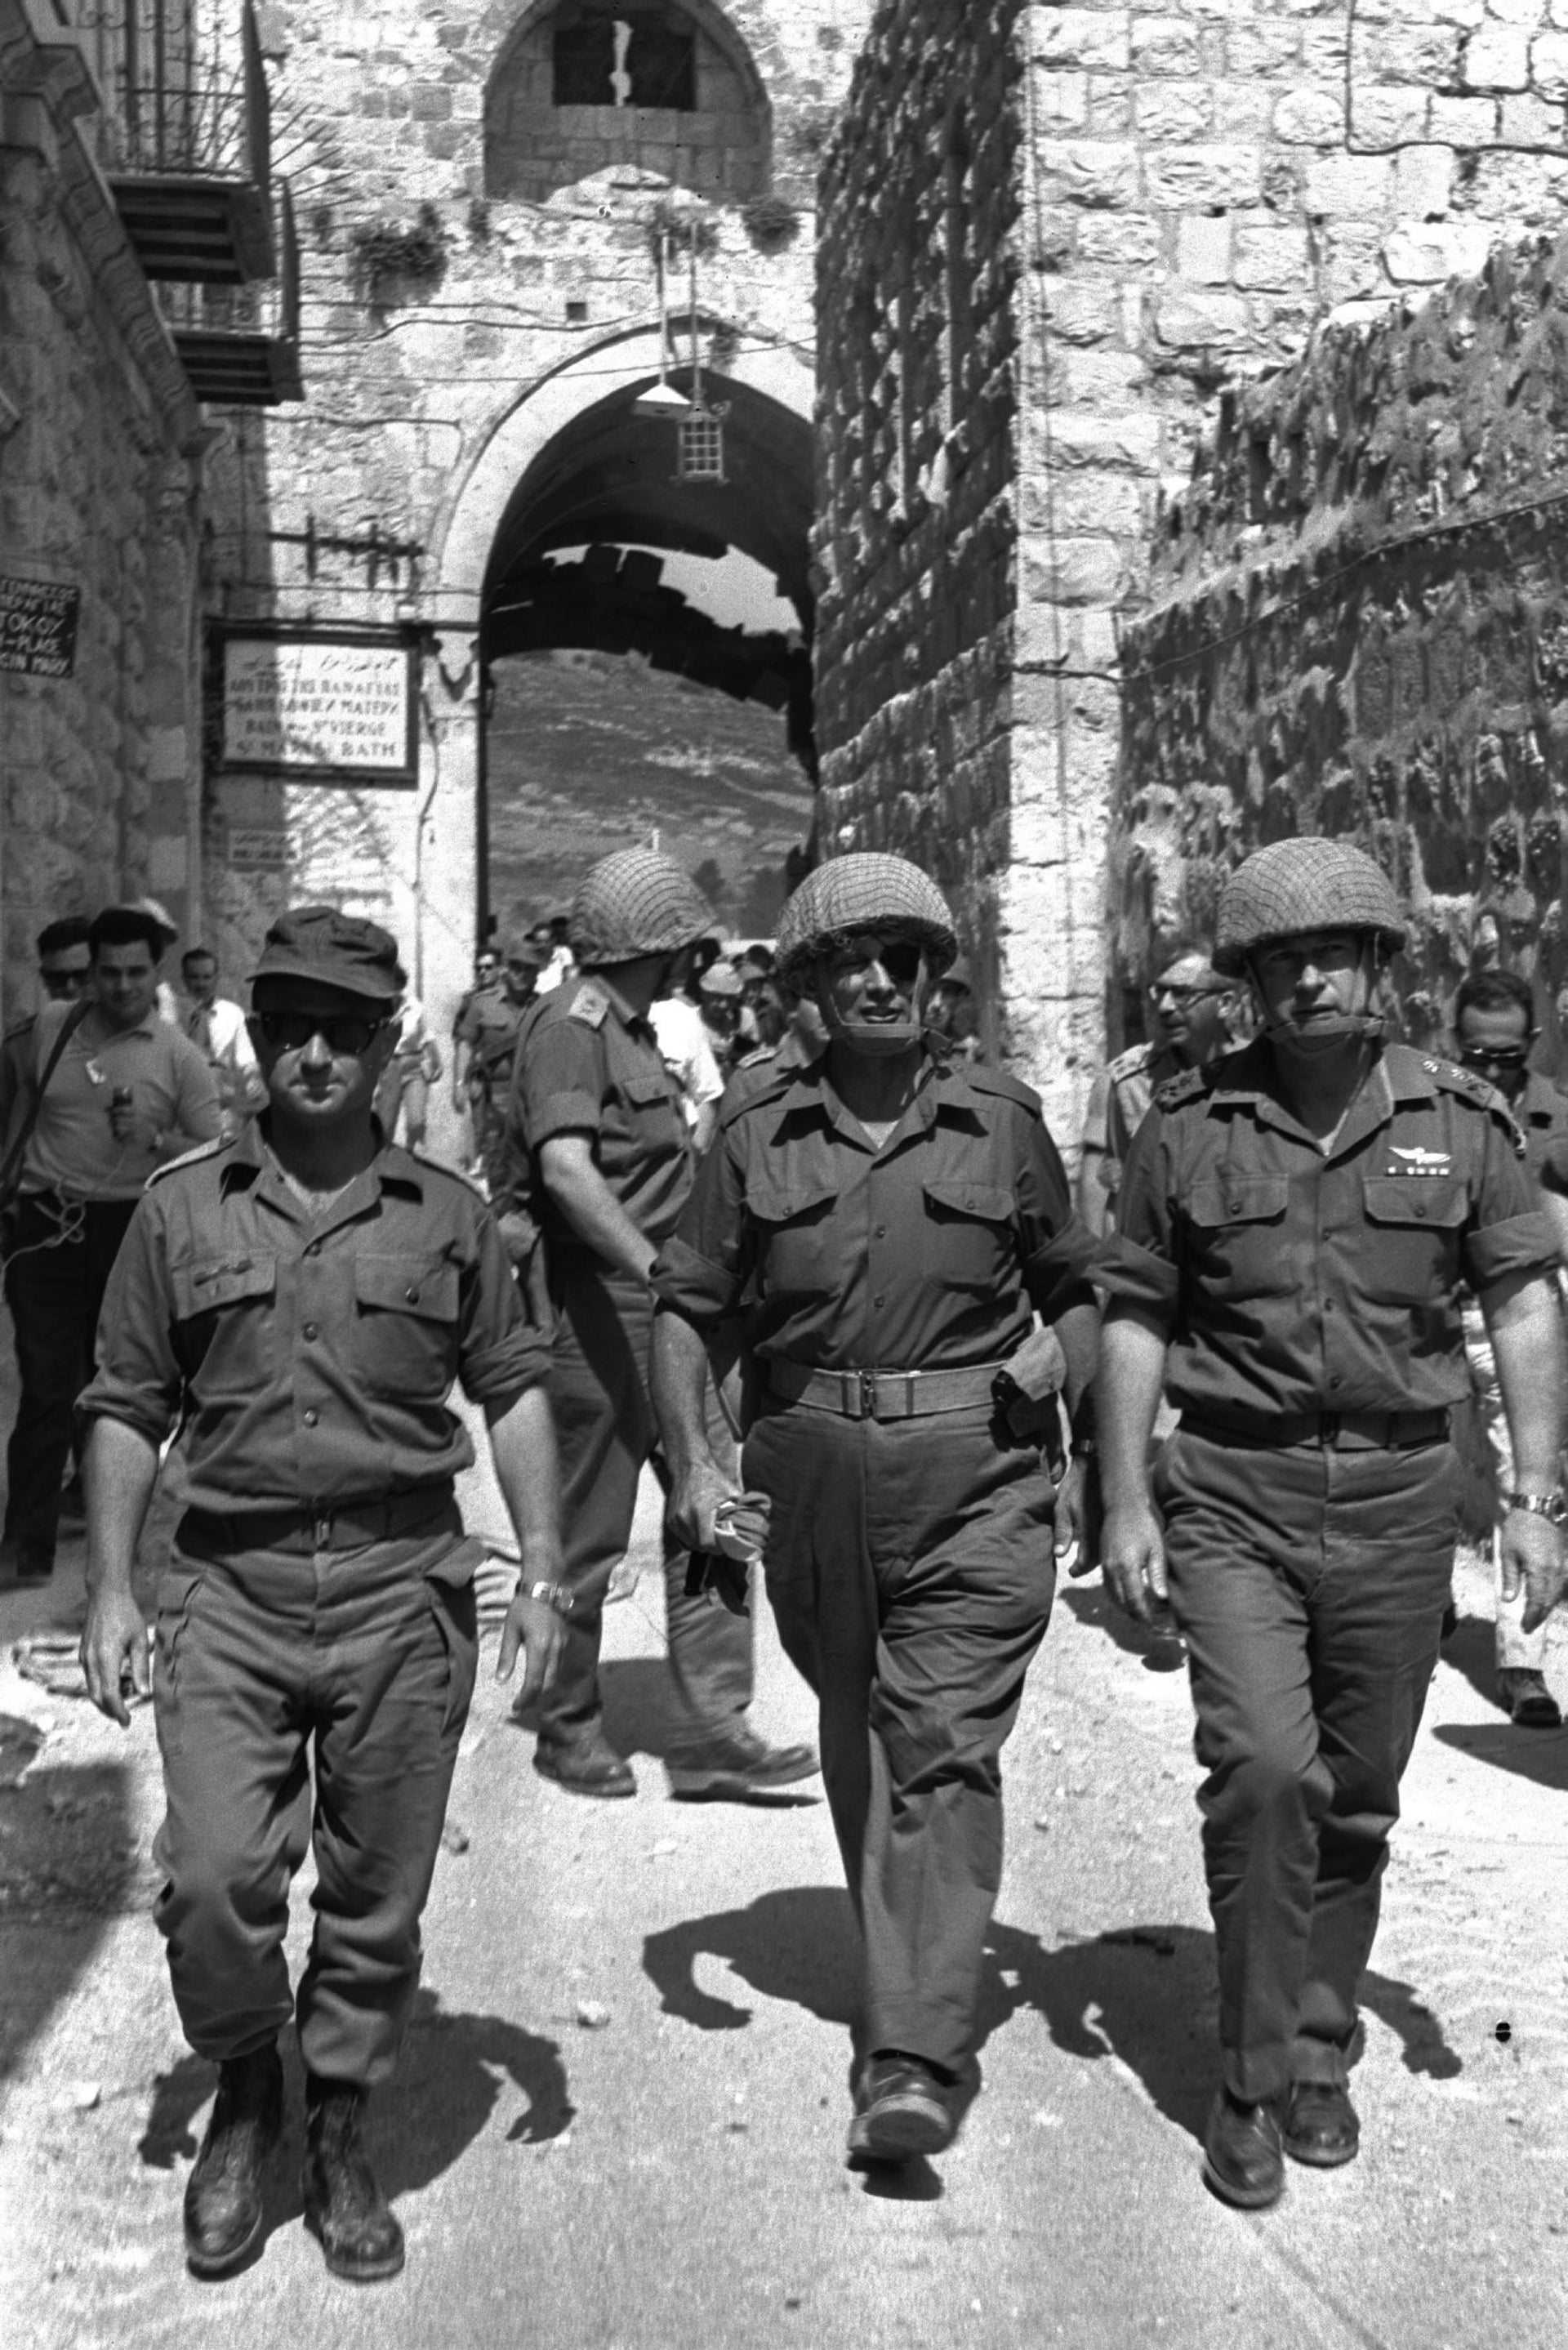 Defense Minister Moshe Dayan (c), Chief of Staff Yitzhak Rabin (r) and Jerusalem Commander Uzi Narkis walk through the Lion's Gate into the Old City, June 7, 1967.